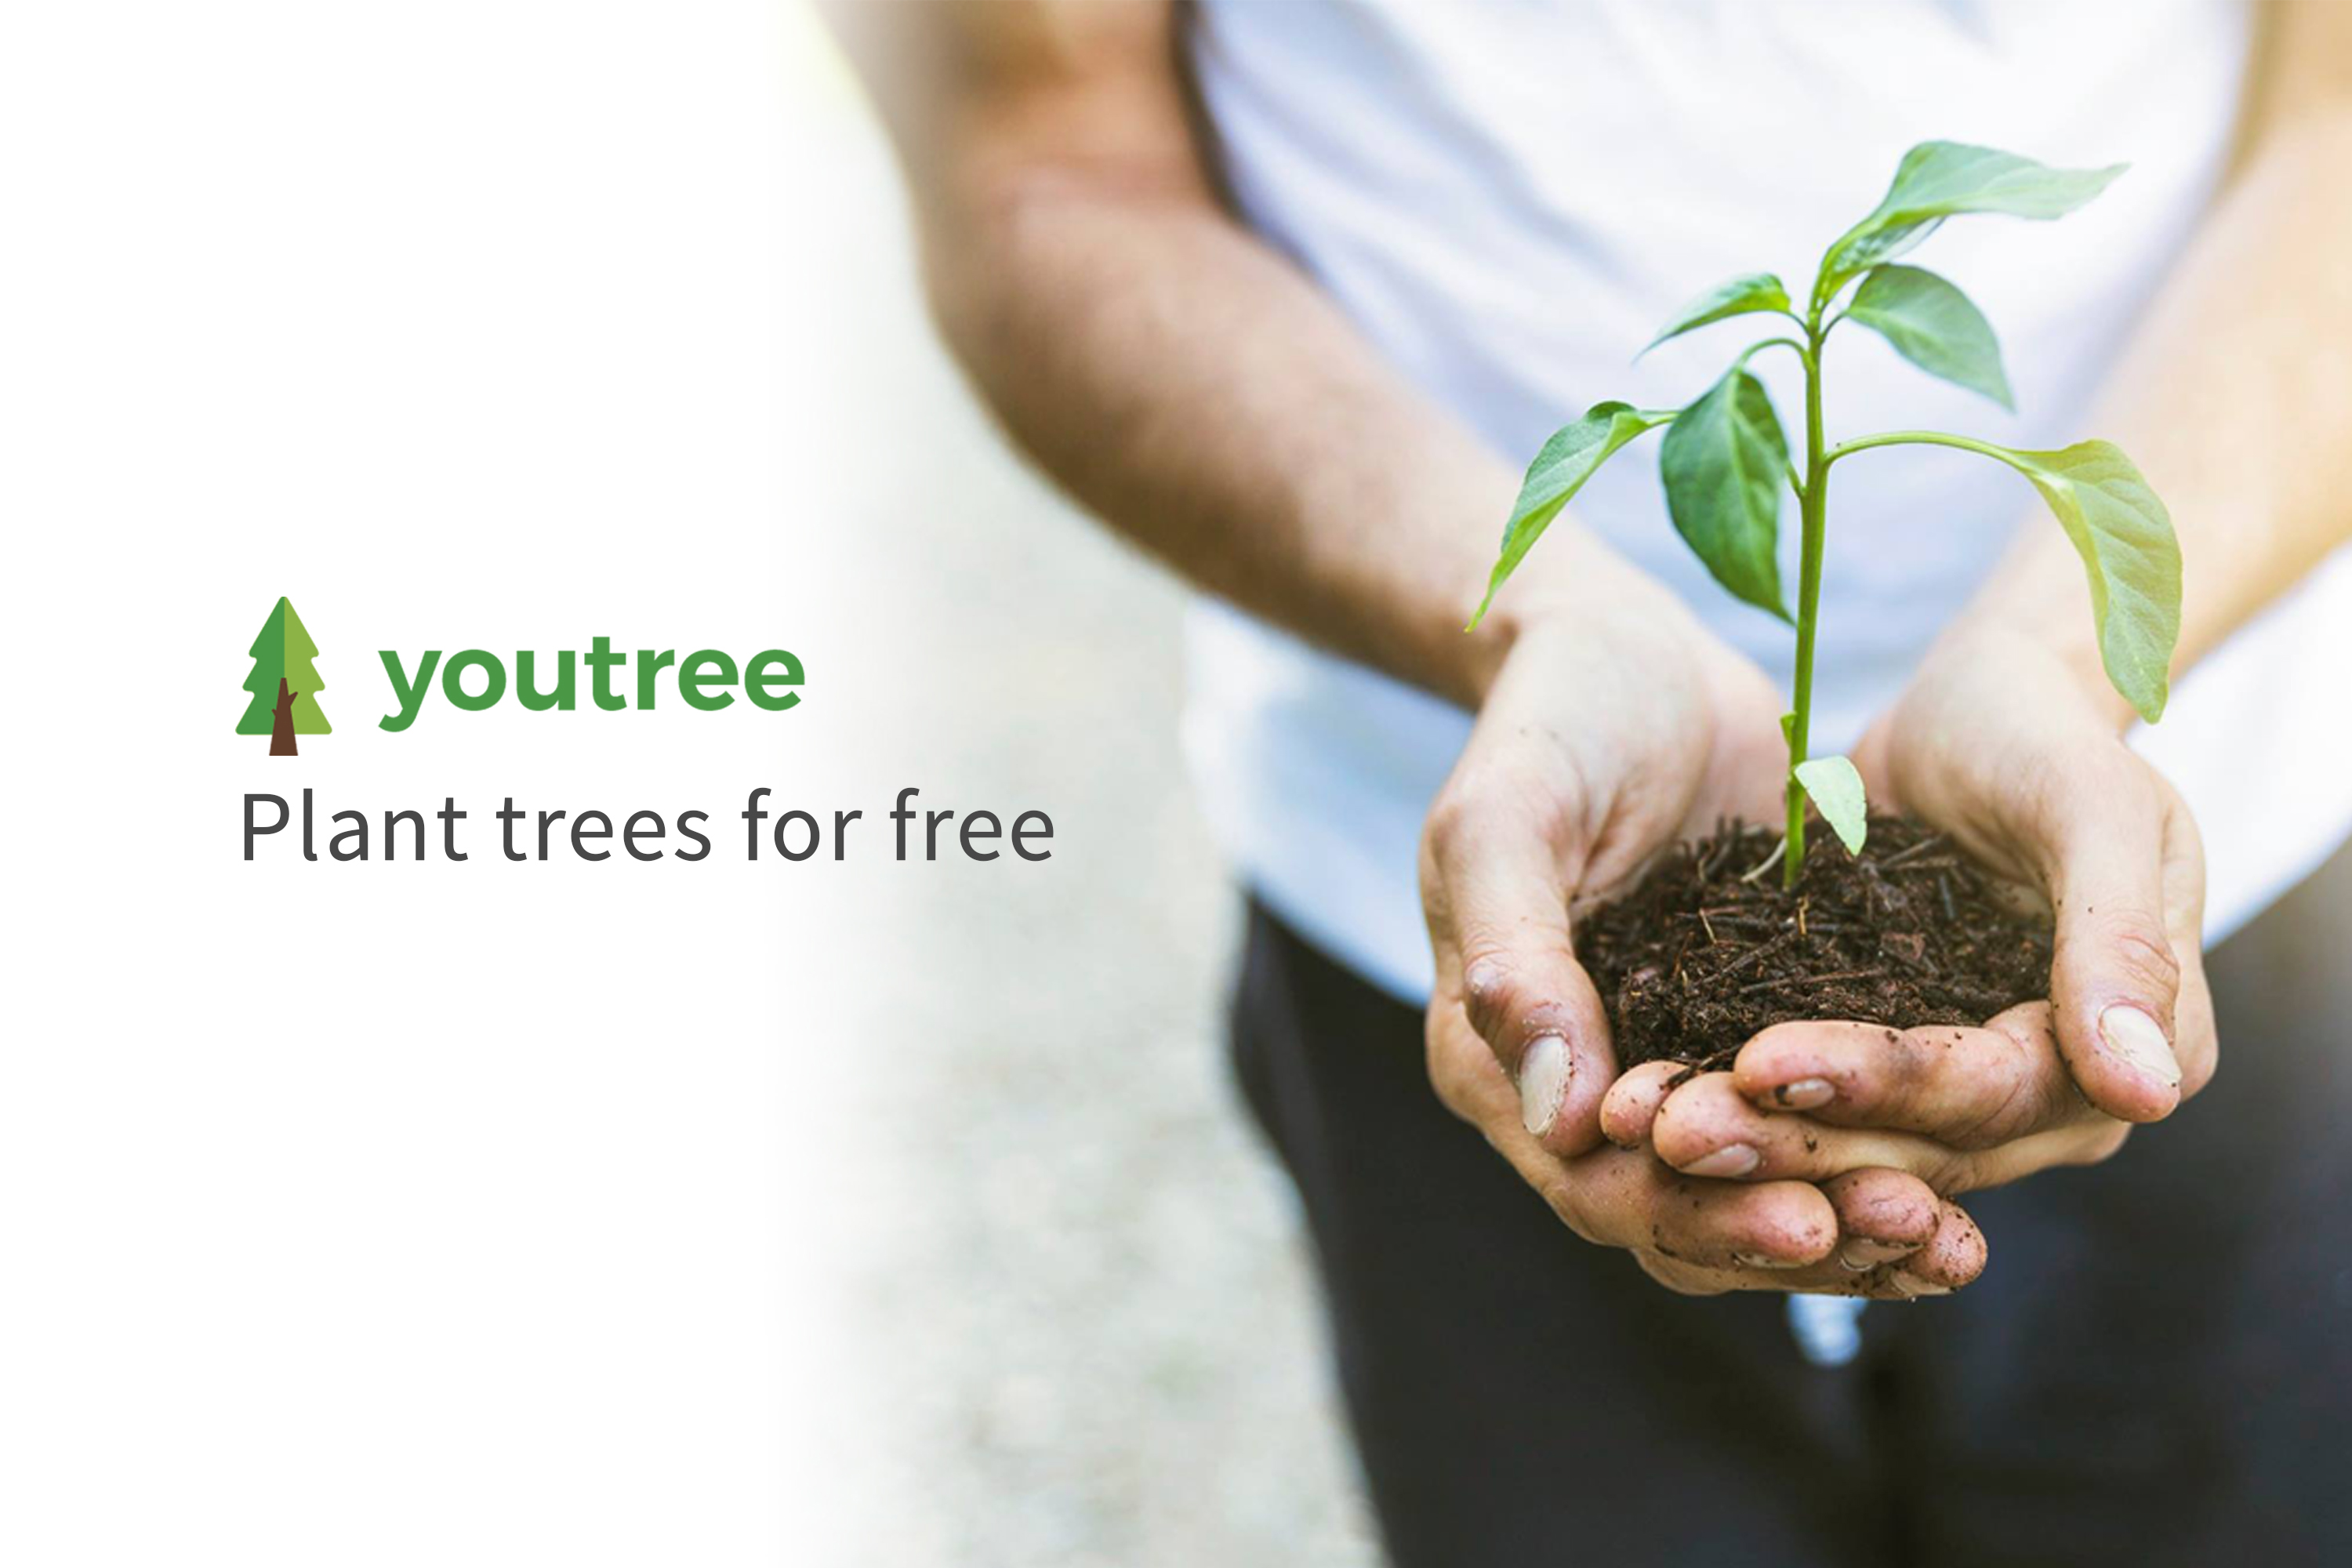 Youtree